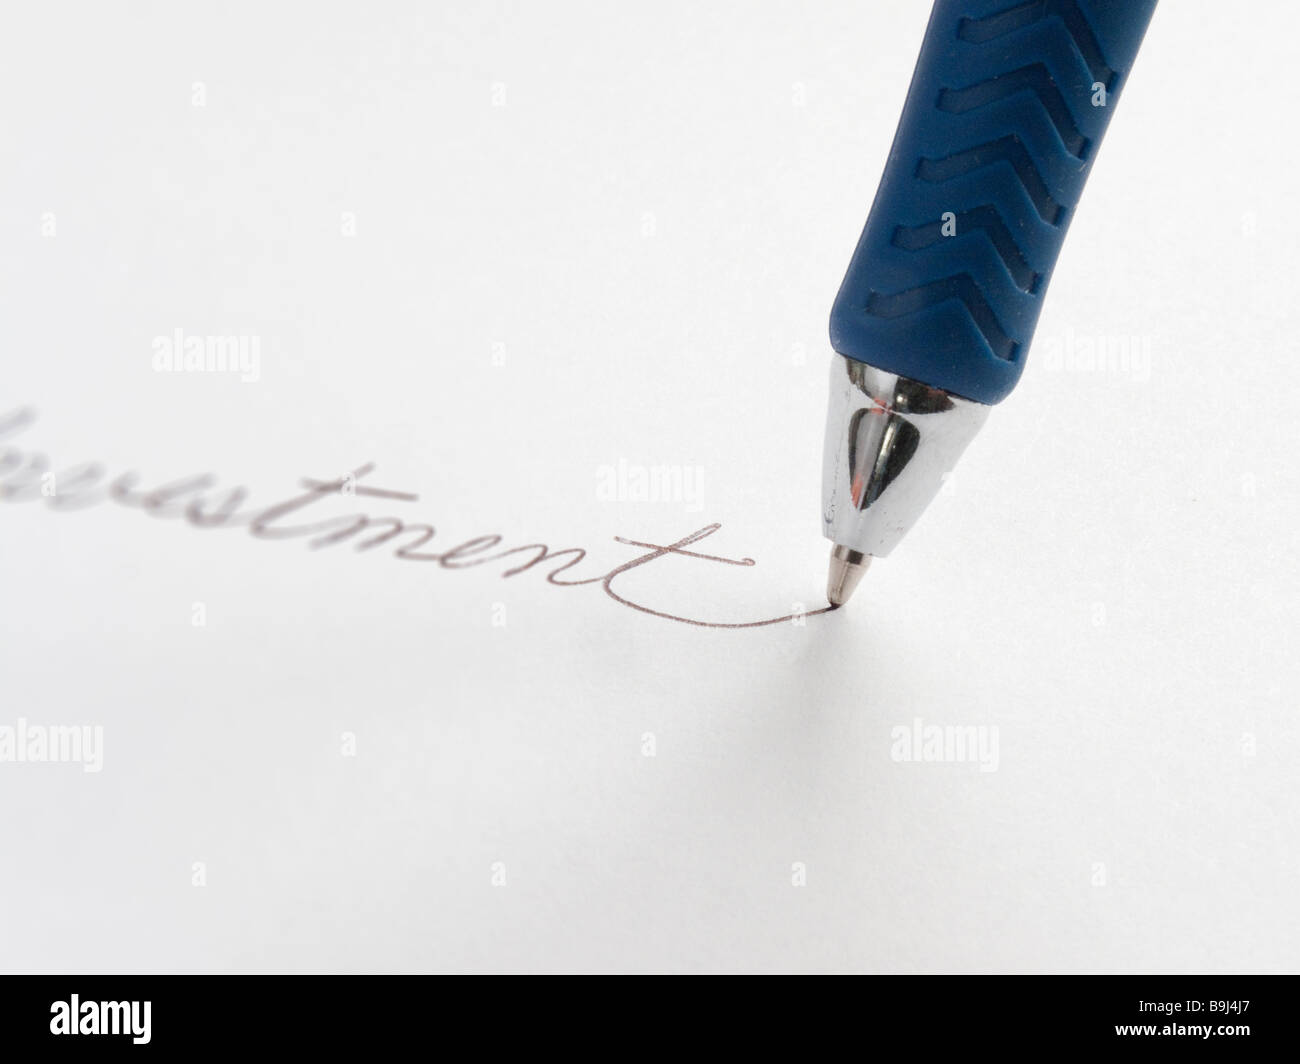 Pen and Paper - Stock Image